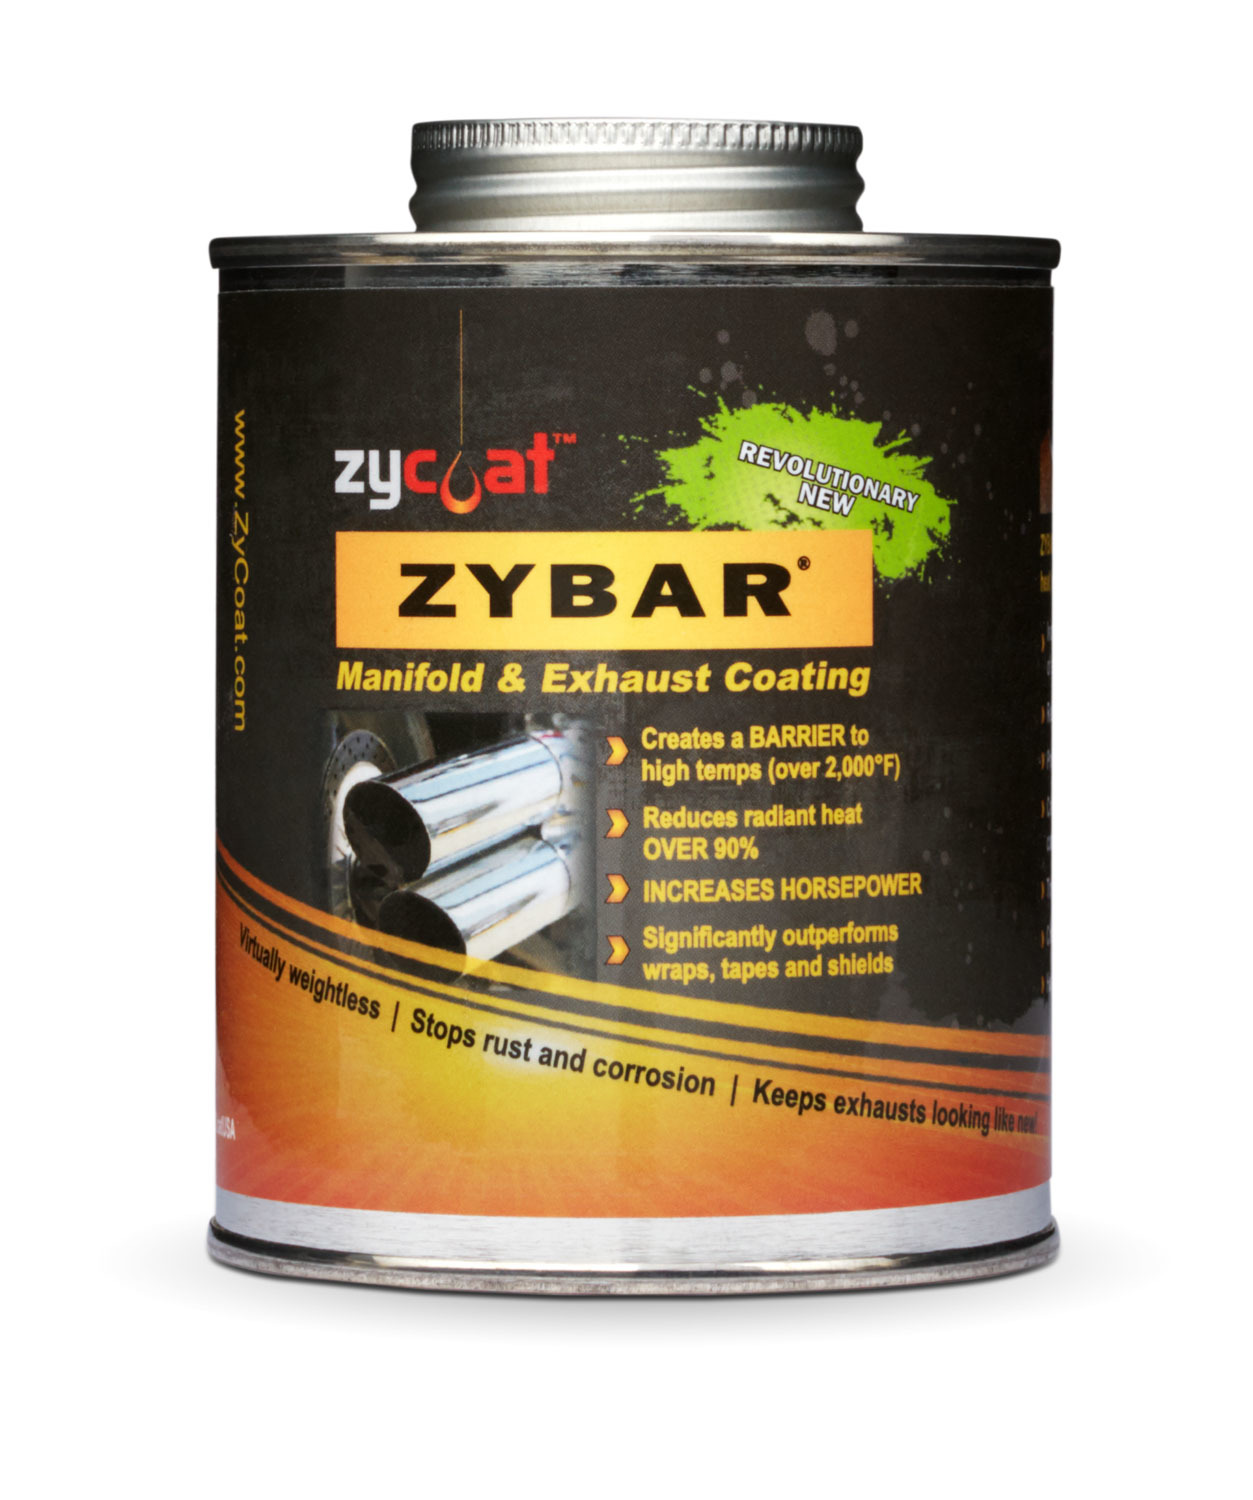 Zycoat 10016 Paint, Exhaust / Header, High Temperature, Ceramic Urethane, Bronze Satin, 16 oz Can, Each